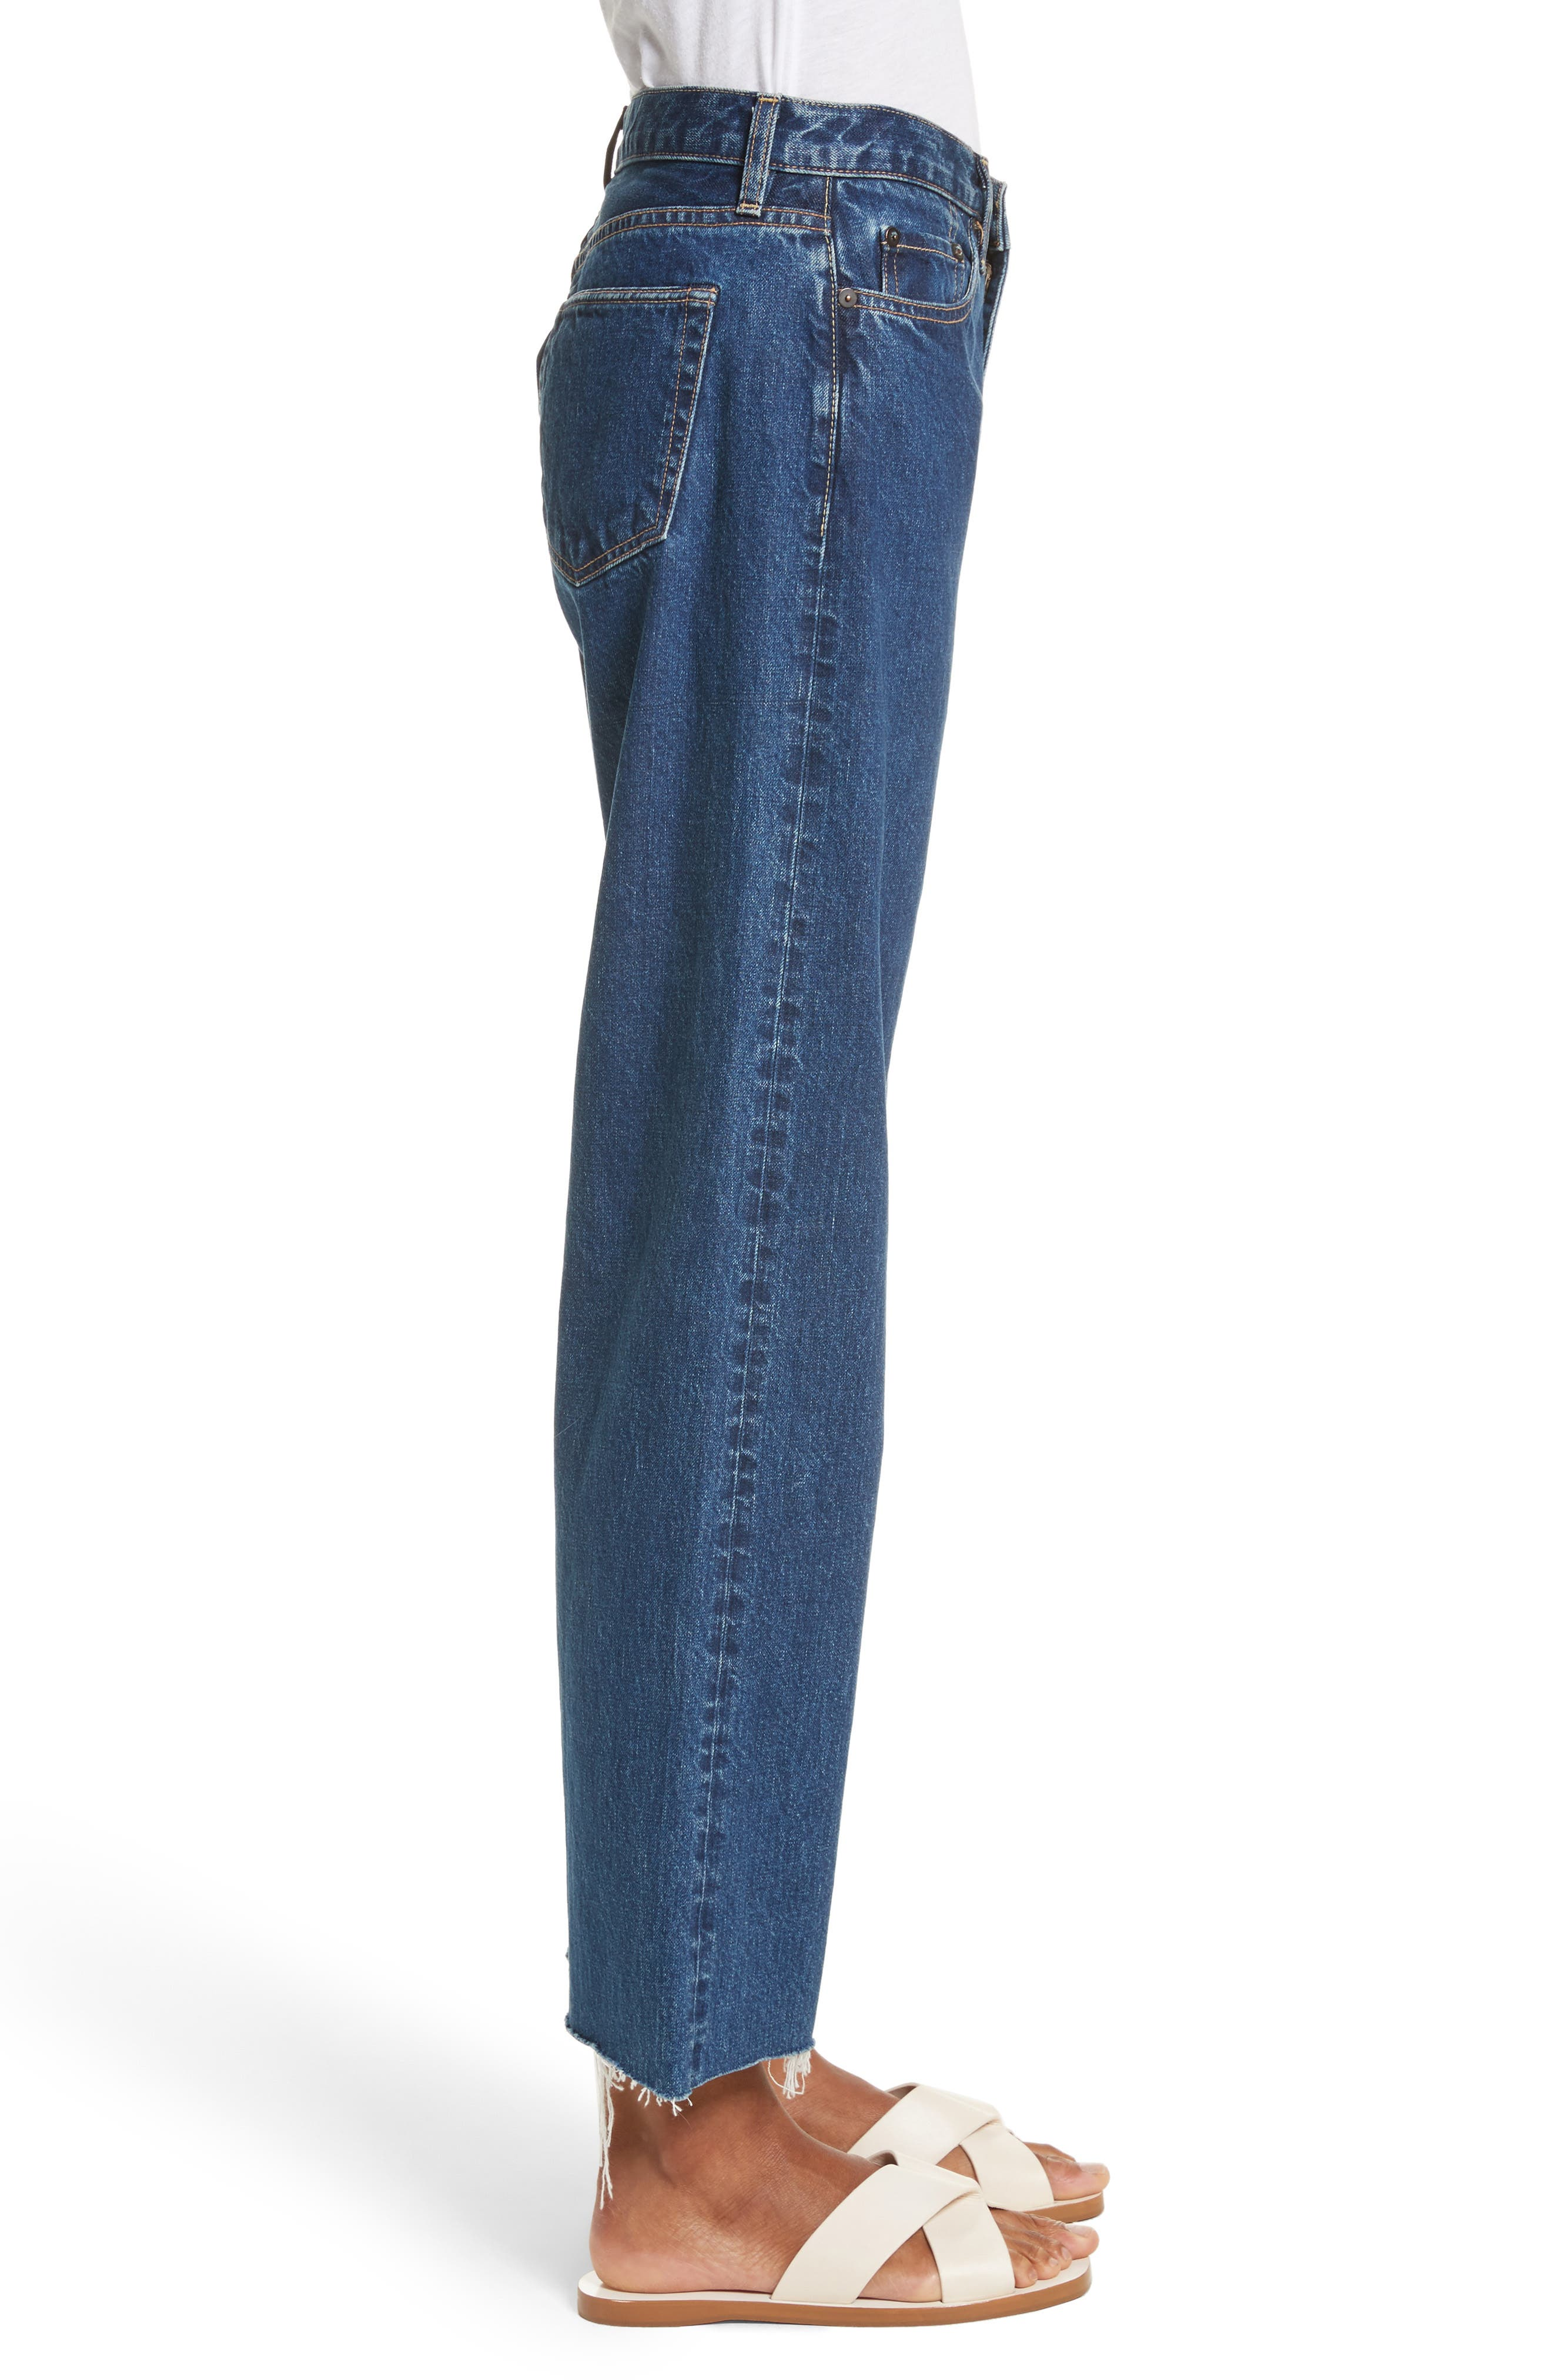 Toluca High Waist Wide Leg Jeans,                             Alternate thumbnail 3, color,                             Indigo